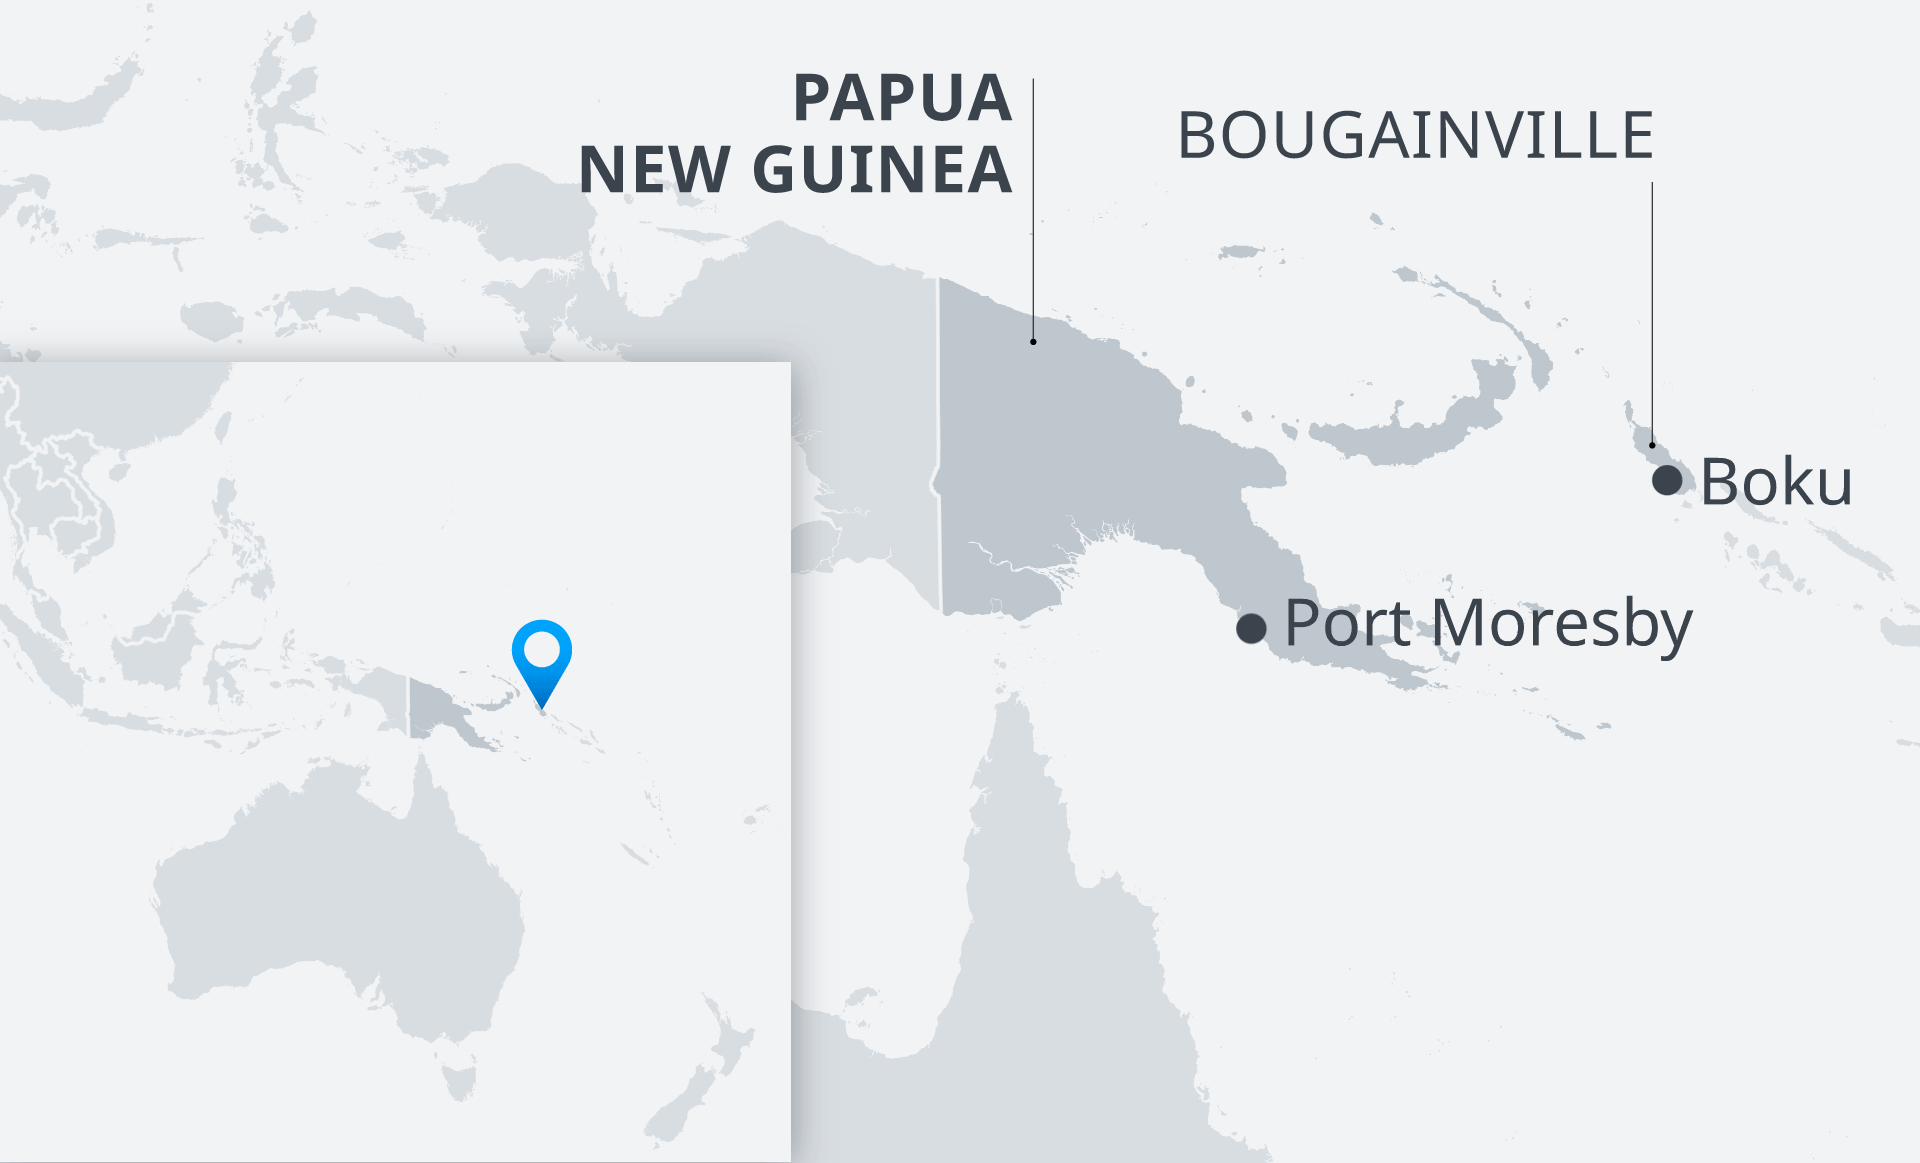 Map of Papua New Guinea with Bougainville EN